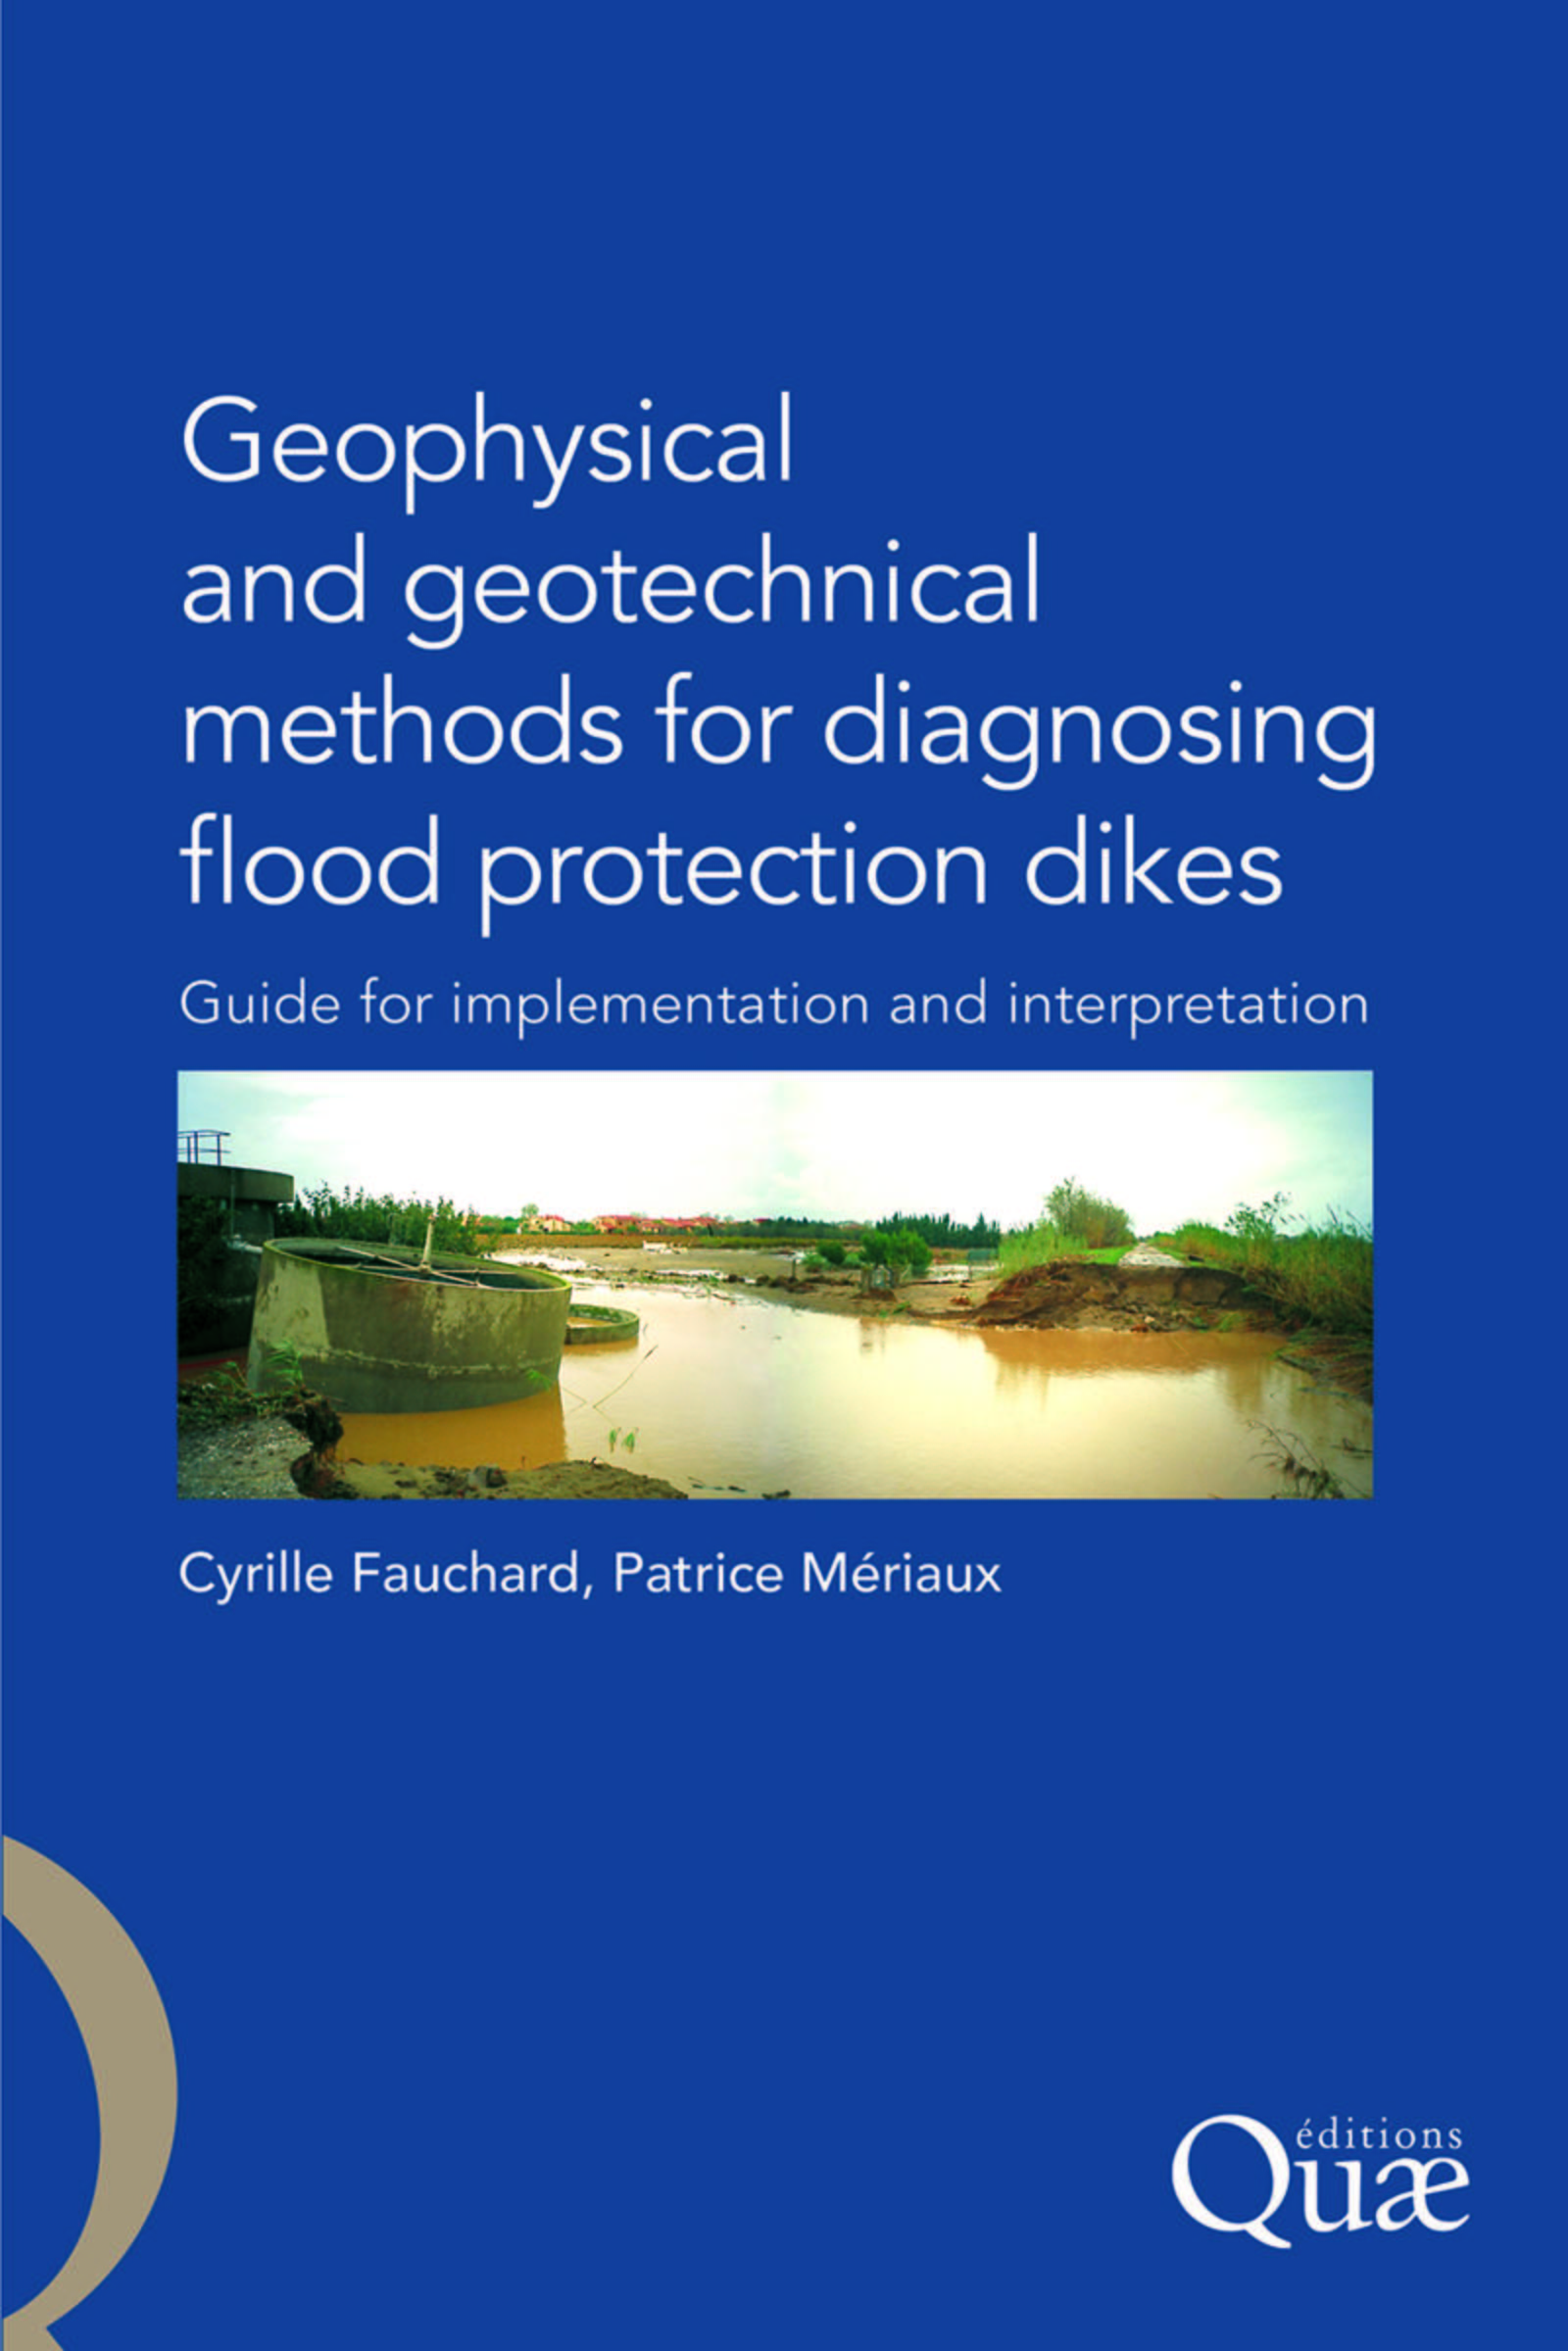 GEOPHYSICAL AND GEOTECHNICAL METHODS FOR DIAGNOSING FLOOD PROTECTION DIKES - GUIDE FOR IMPLEMENTATIO